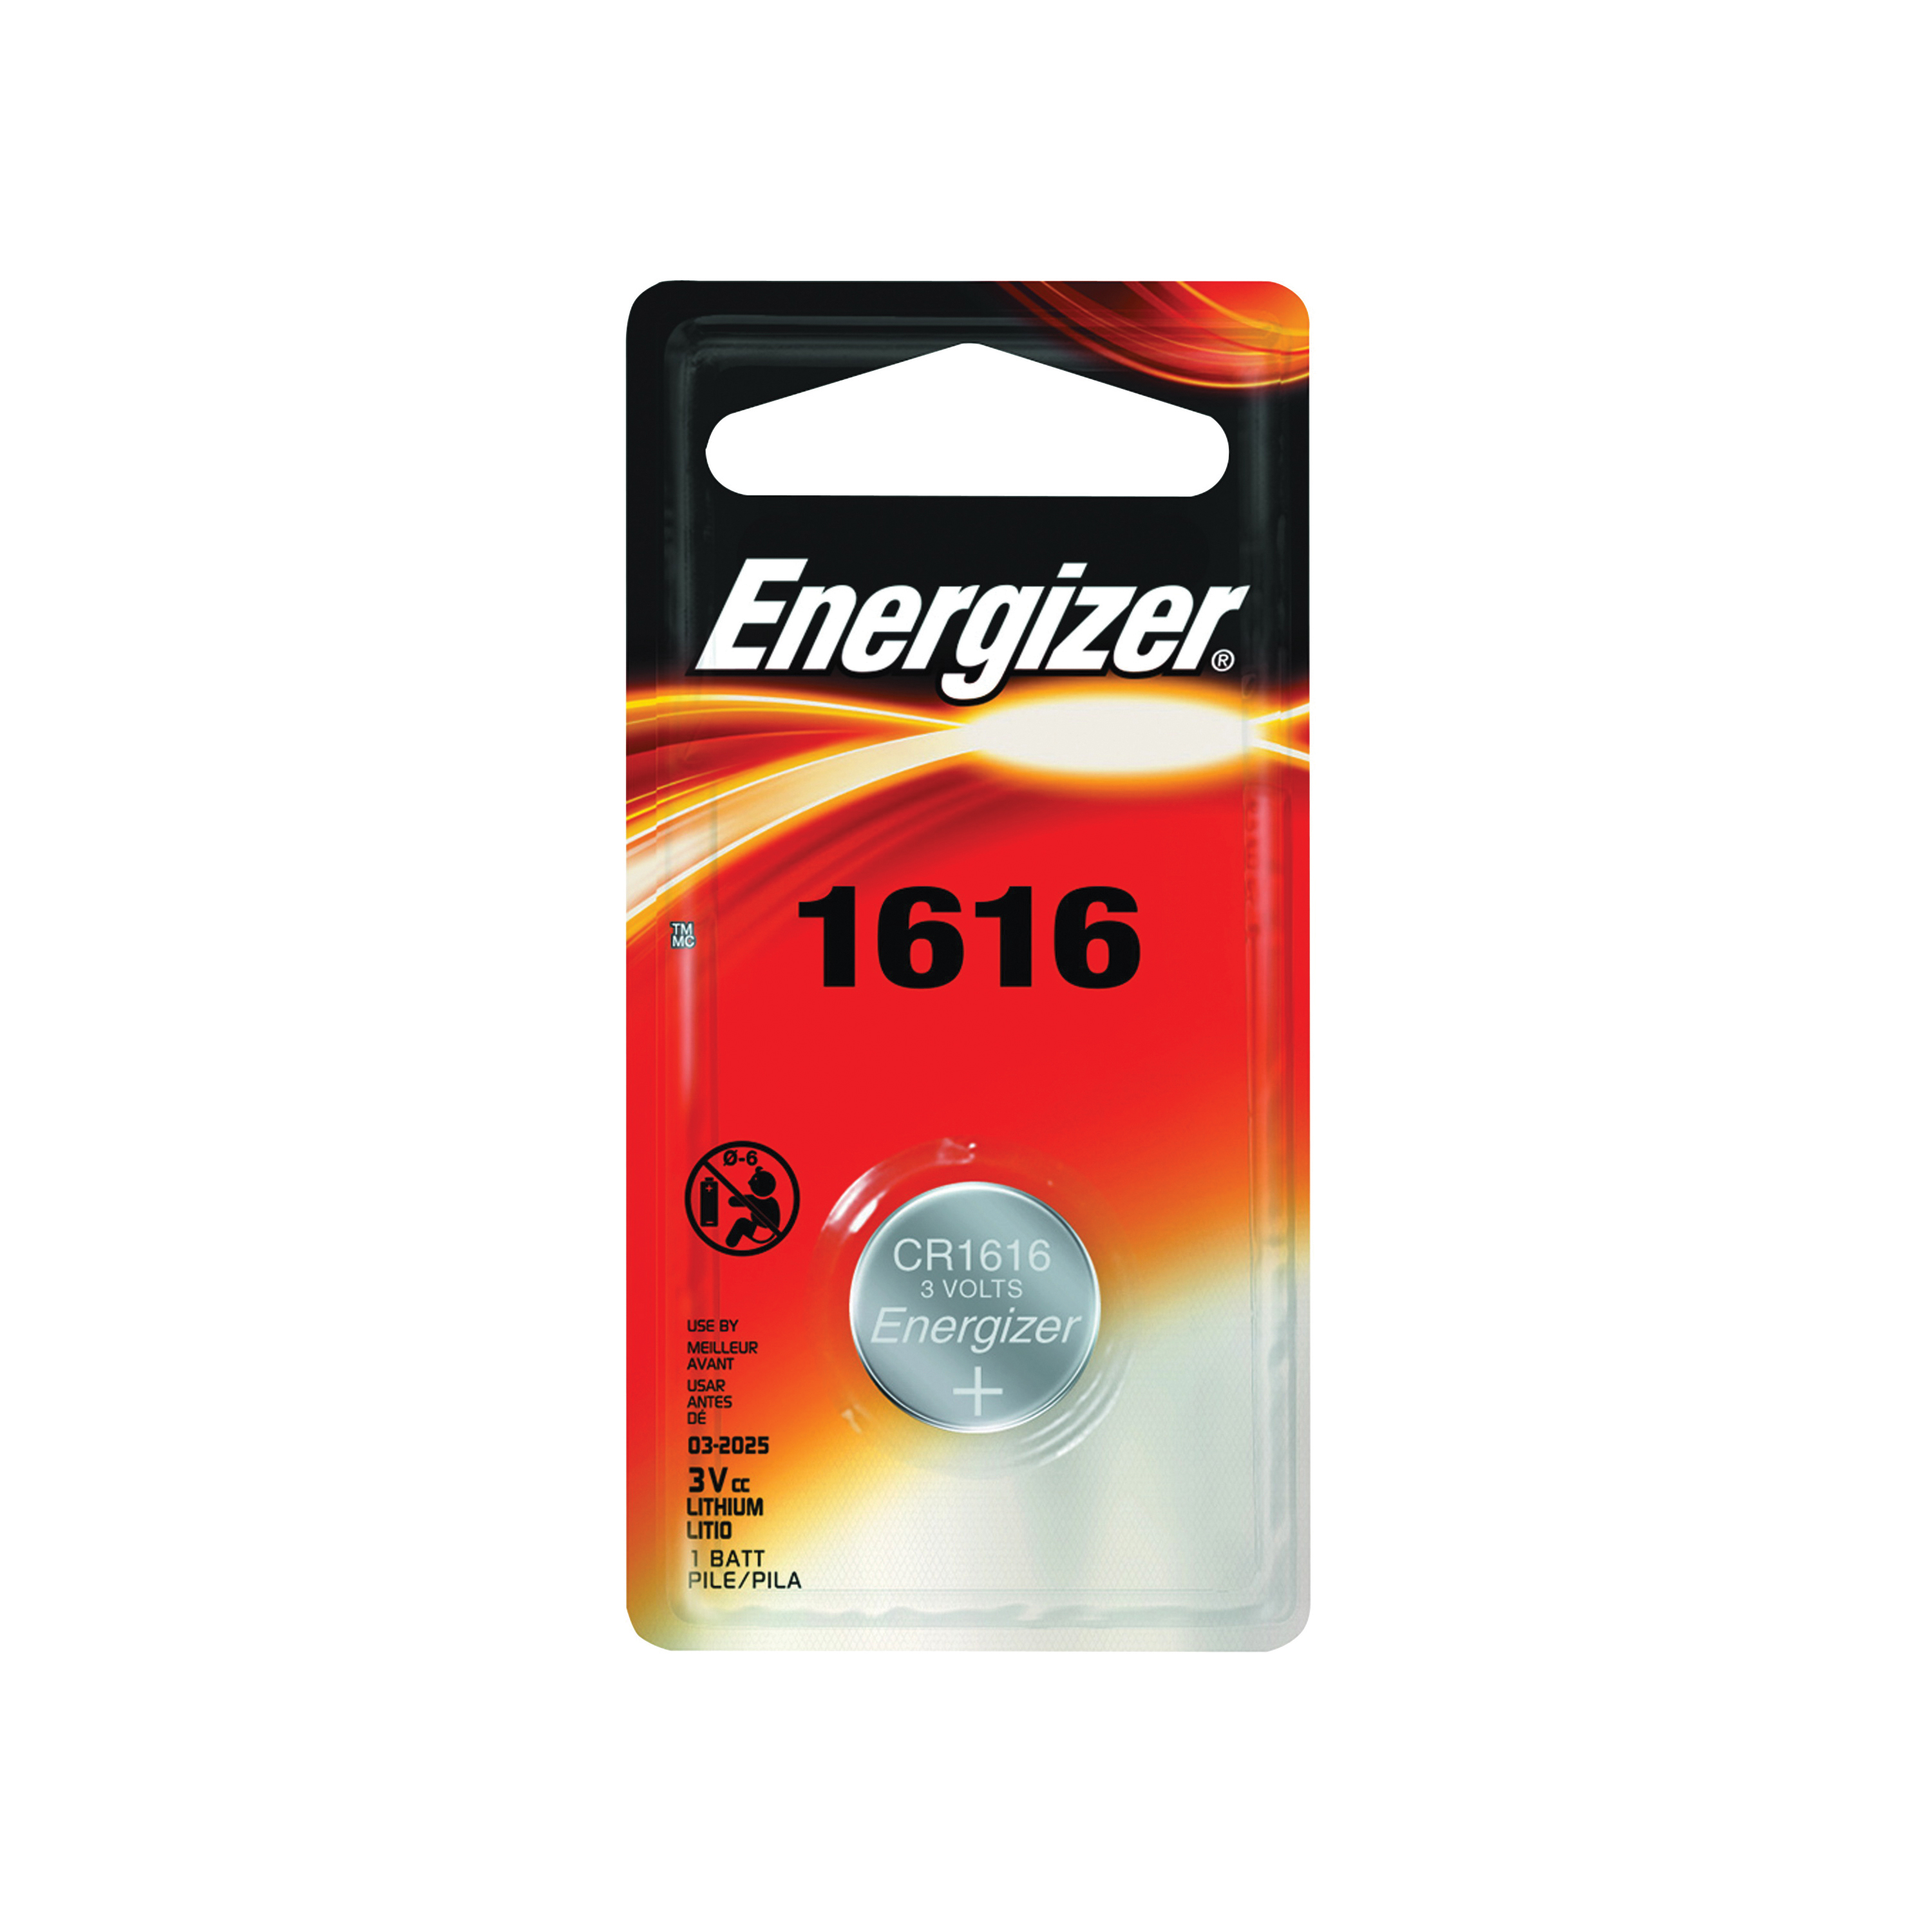 Picture of Energizer ECR1616BP Coin Cell Battery, 3 V Battery, 60 mAh, CR1616 Battery, Lithium, Manganese Dioxide